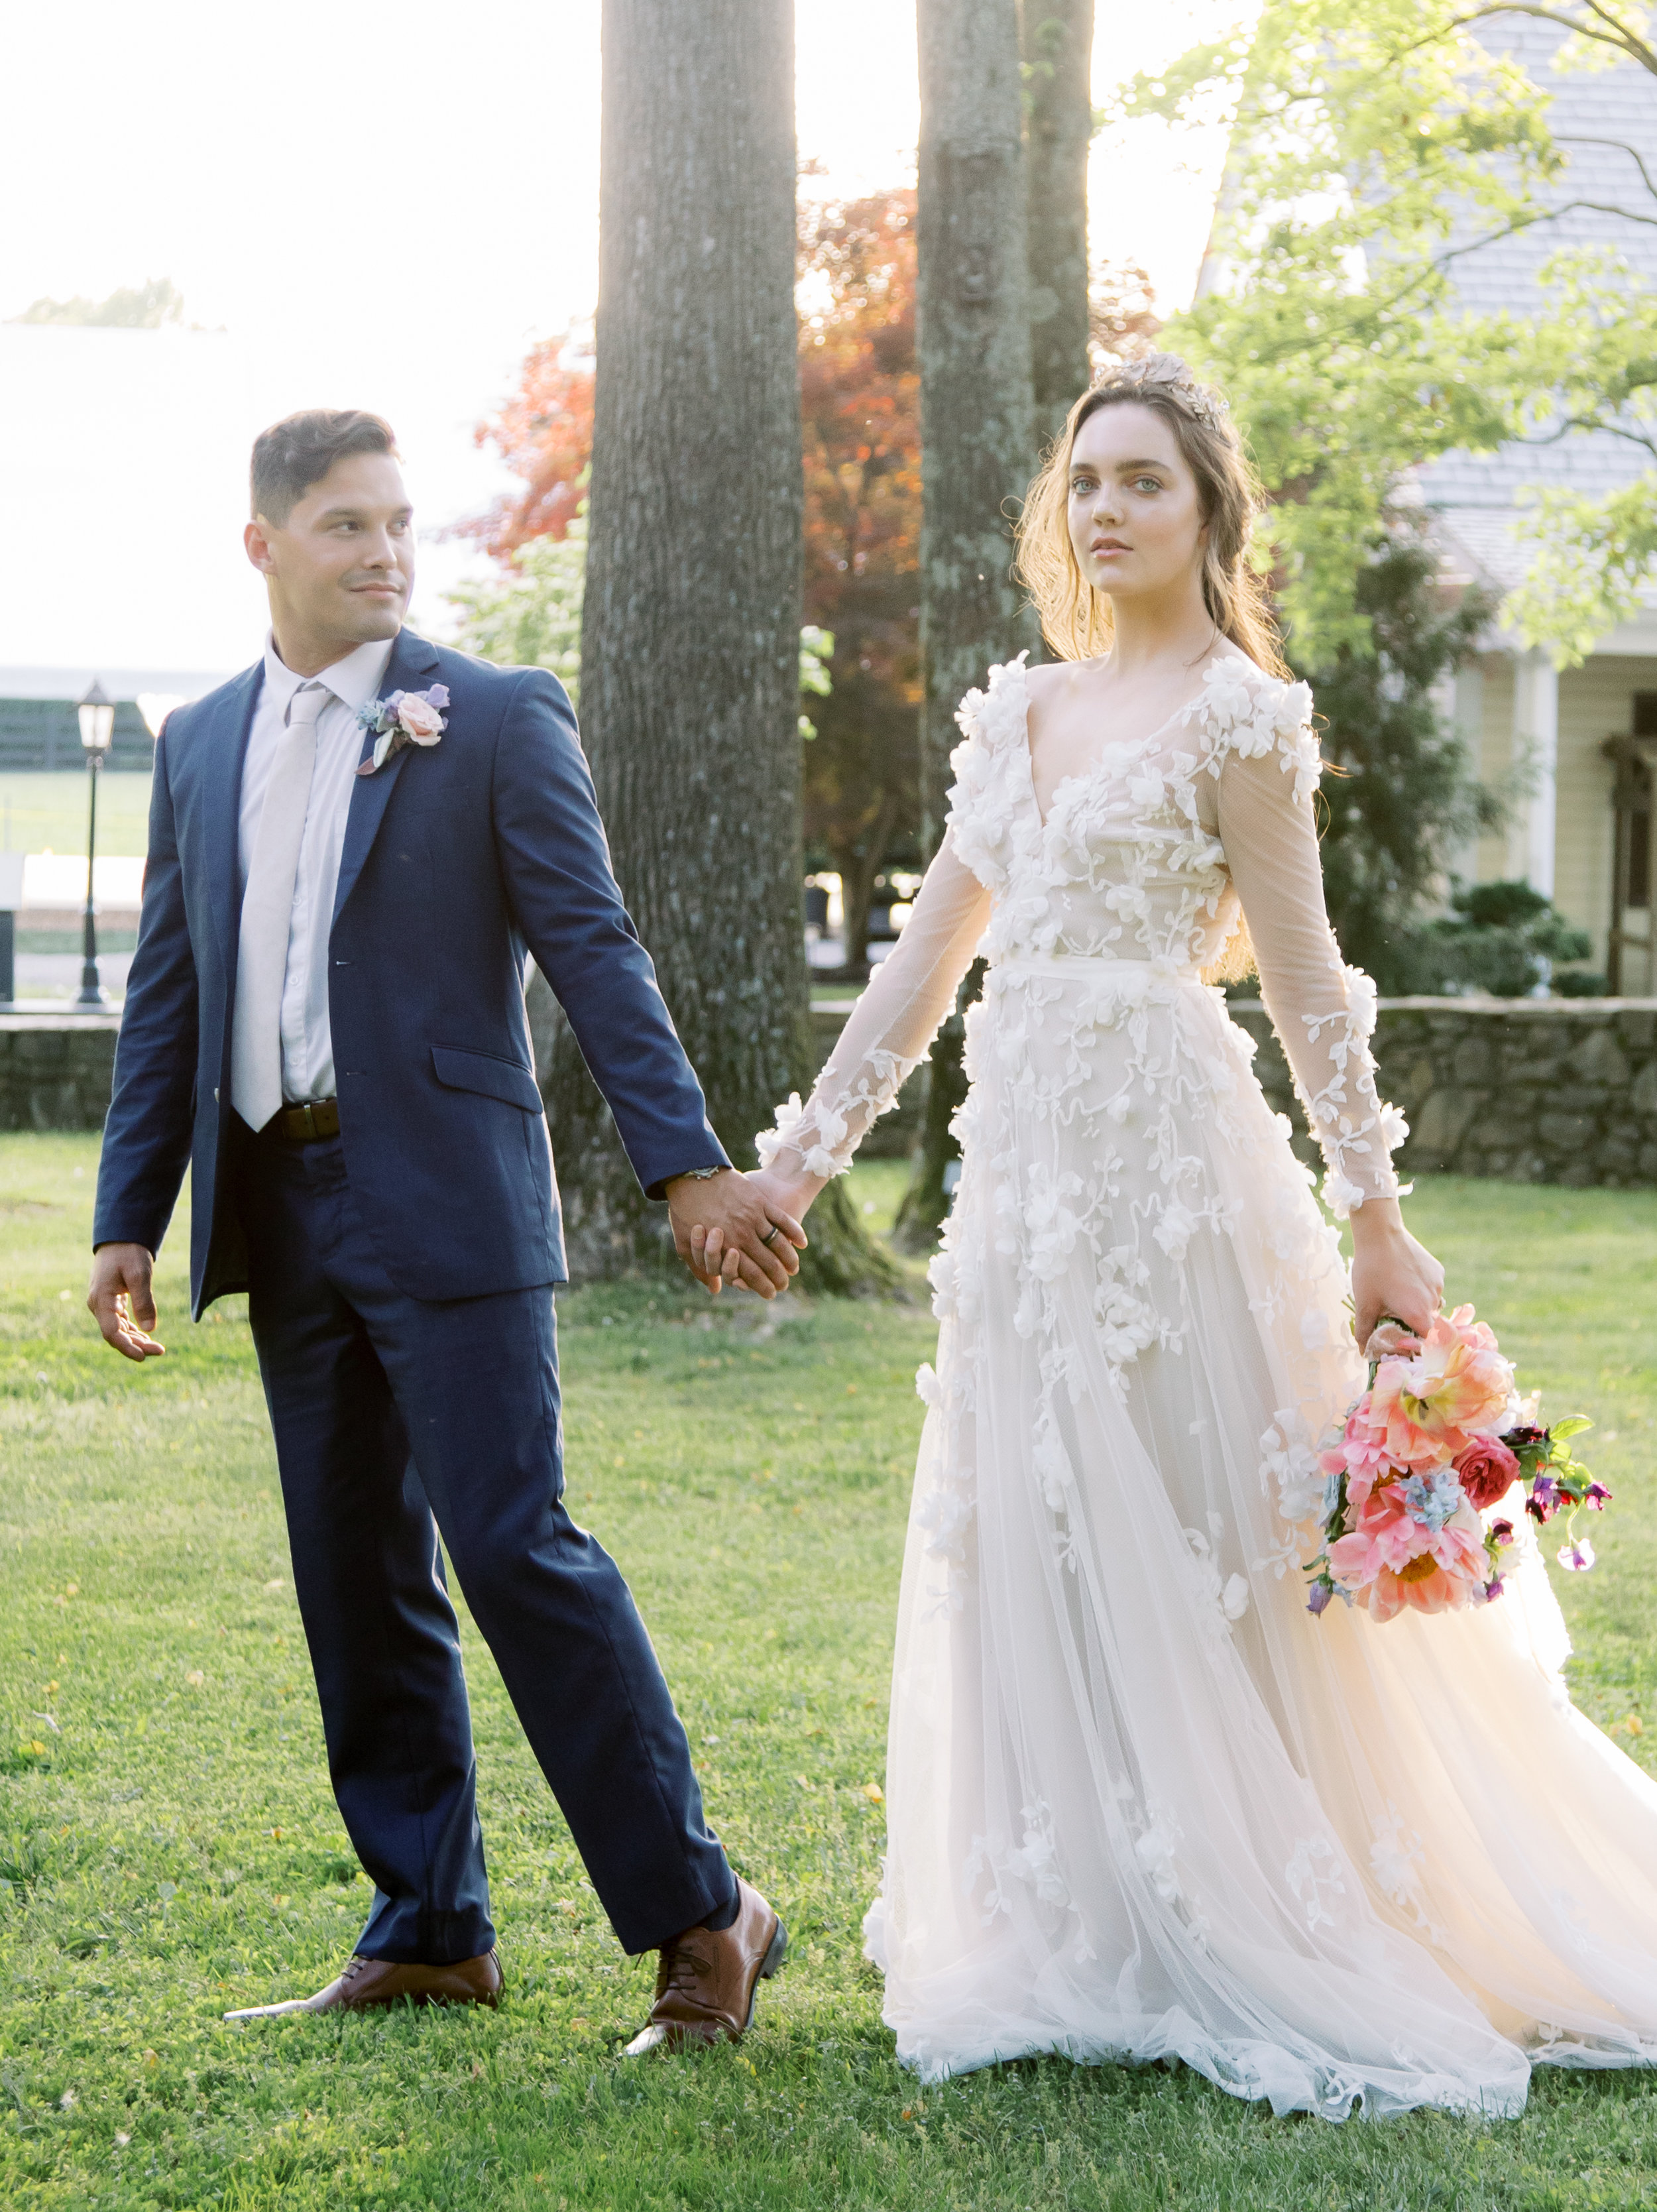 Faith Roper Photography and East Made Co Nashville wedding planner at the Estate at Cherokee Dock wedding inspired by Monet Hybrid Co-139.jpg